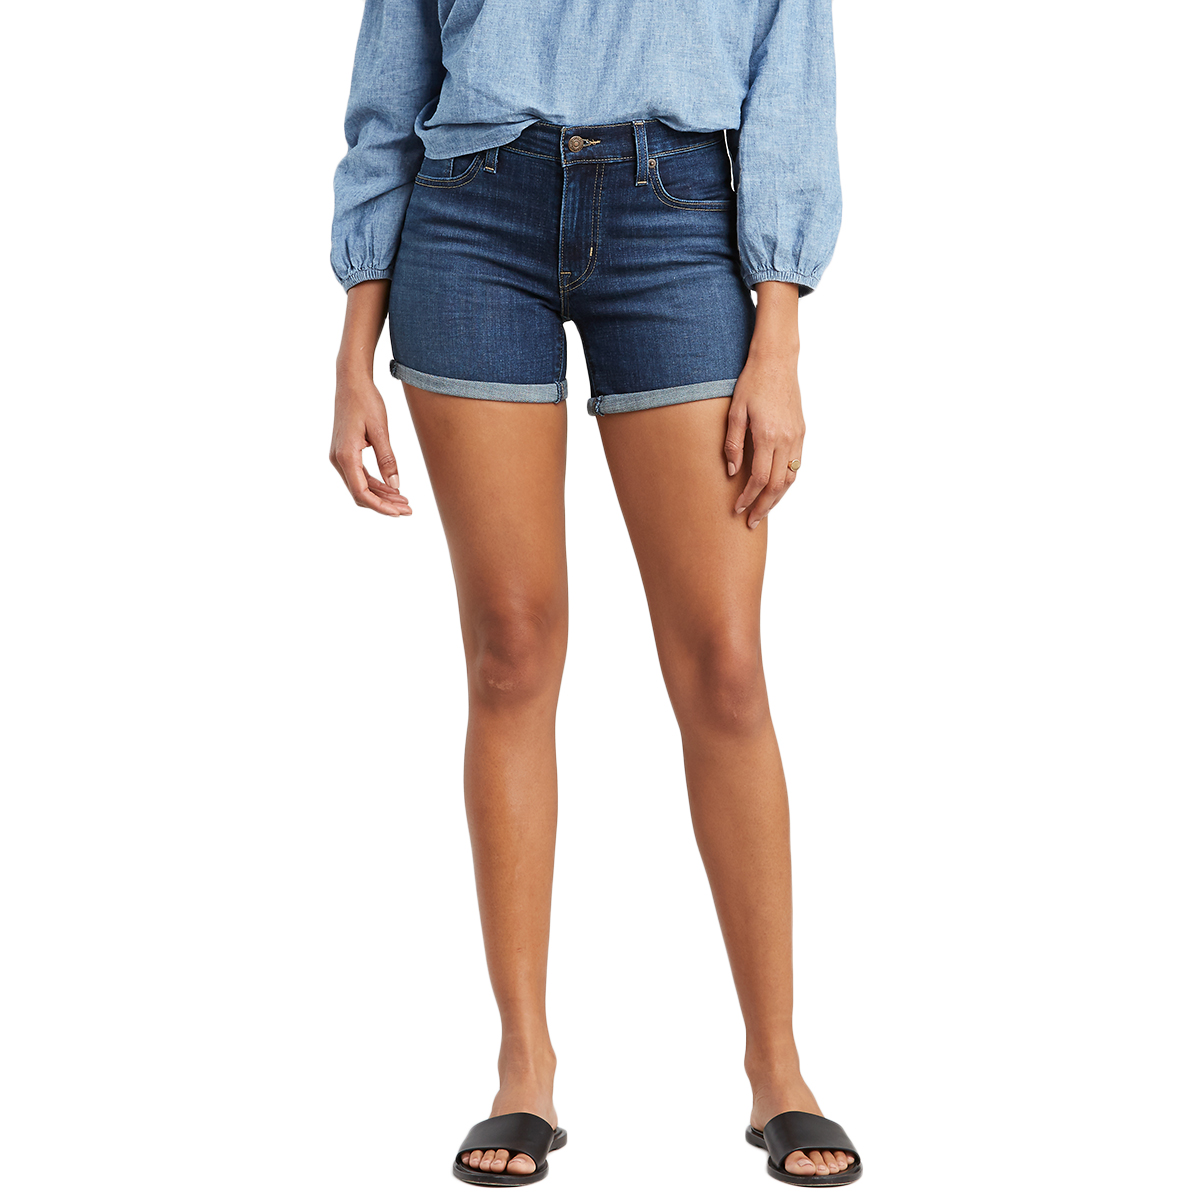 Levi's Women's Mid-Length Shorts - Blue, 28